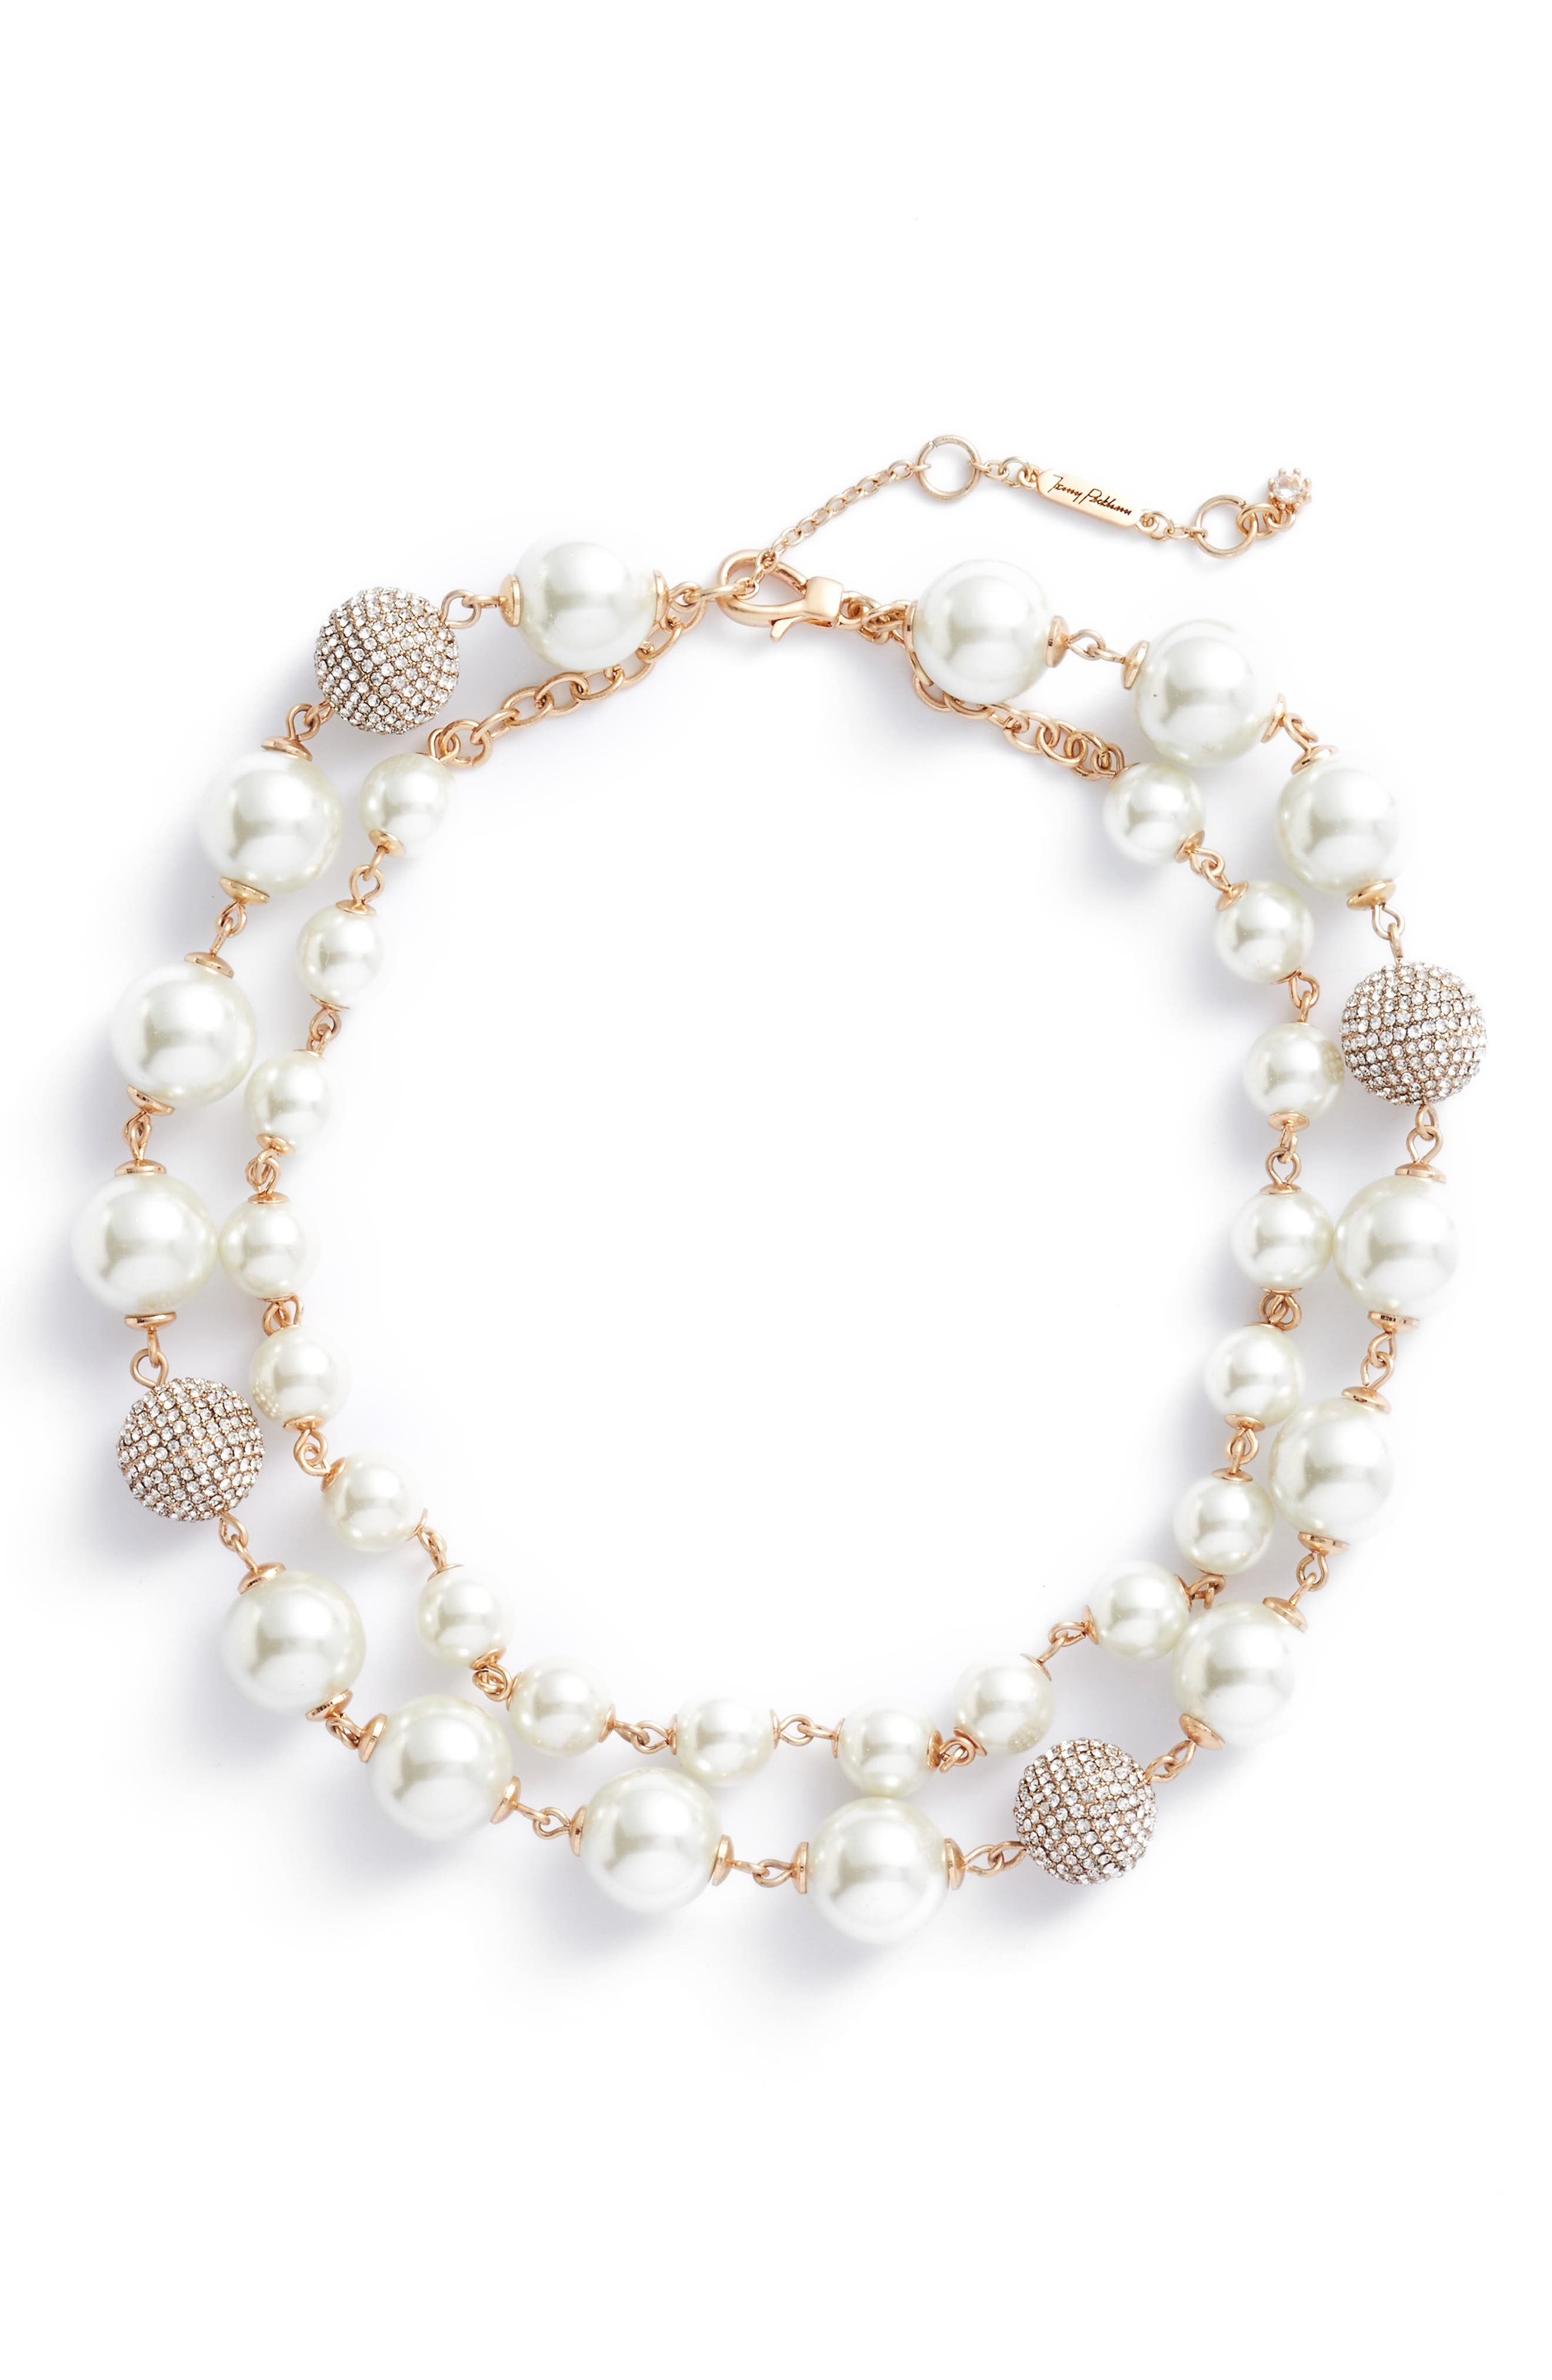 Multistrand Imitation Pearl Necklace,                         Main,                         color, Gold/ Pearl/ Crystal